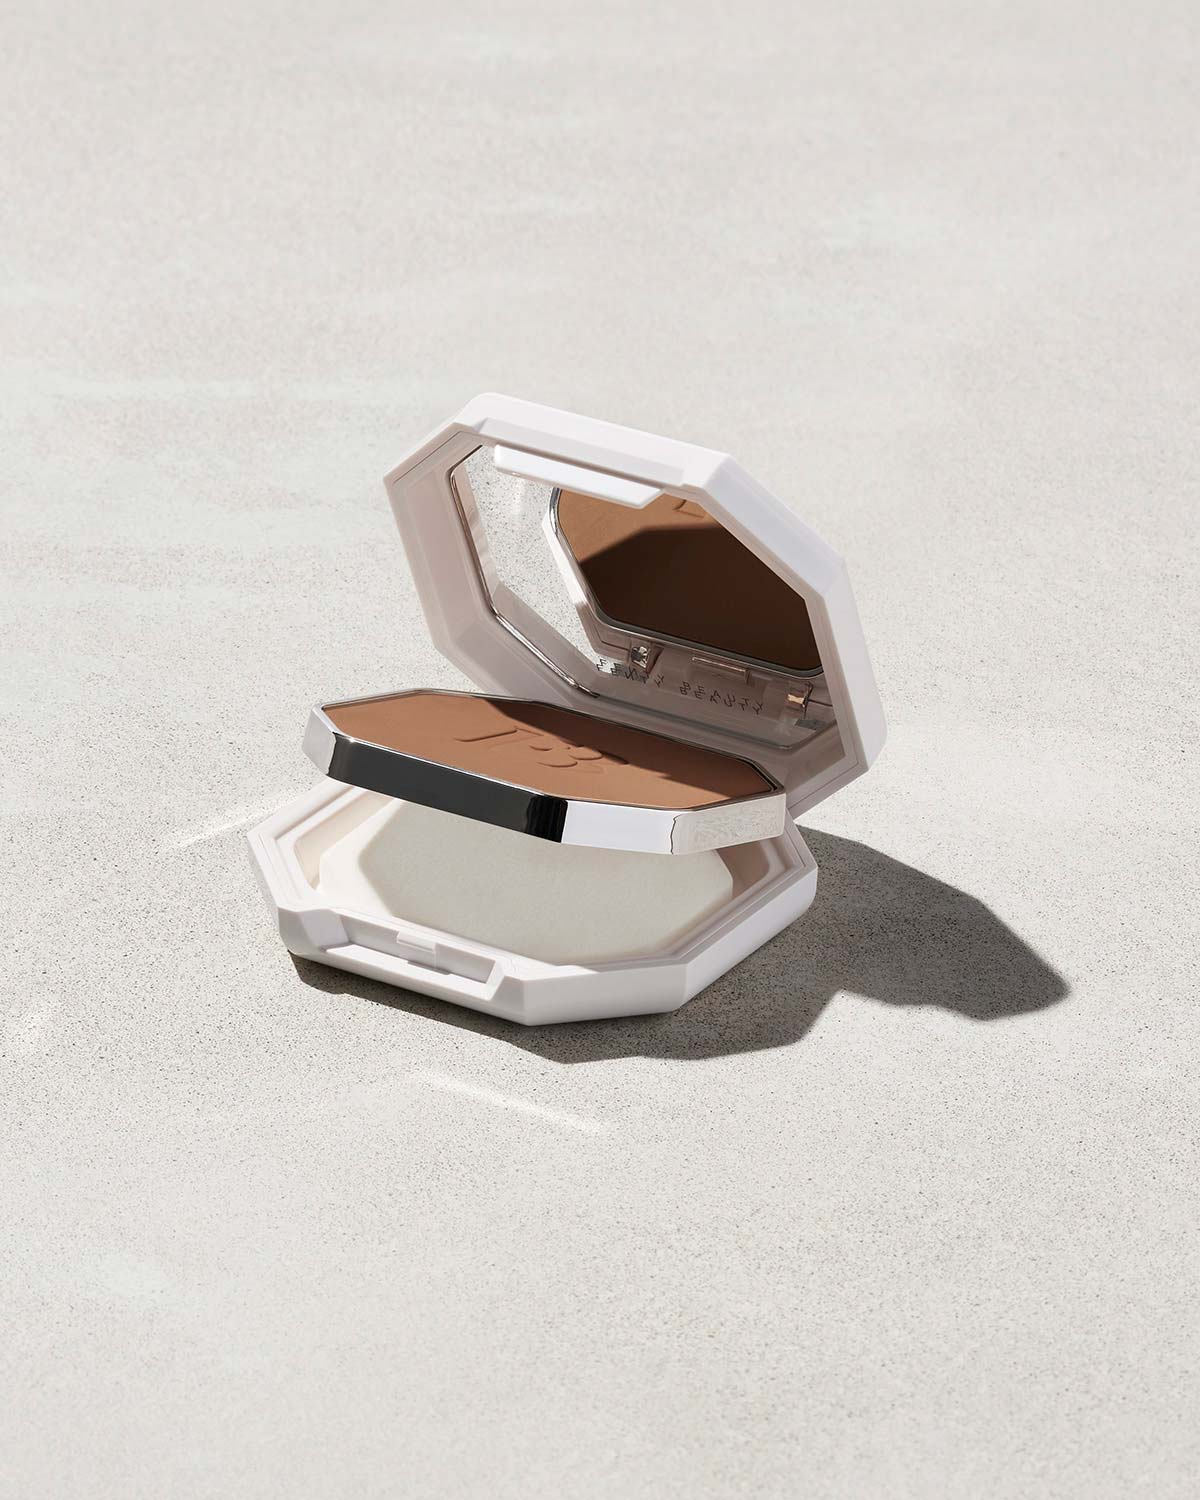 Fenty Beauty Pro Filt'r Soft Matte Powder Foundation